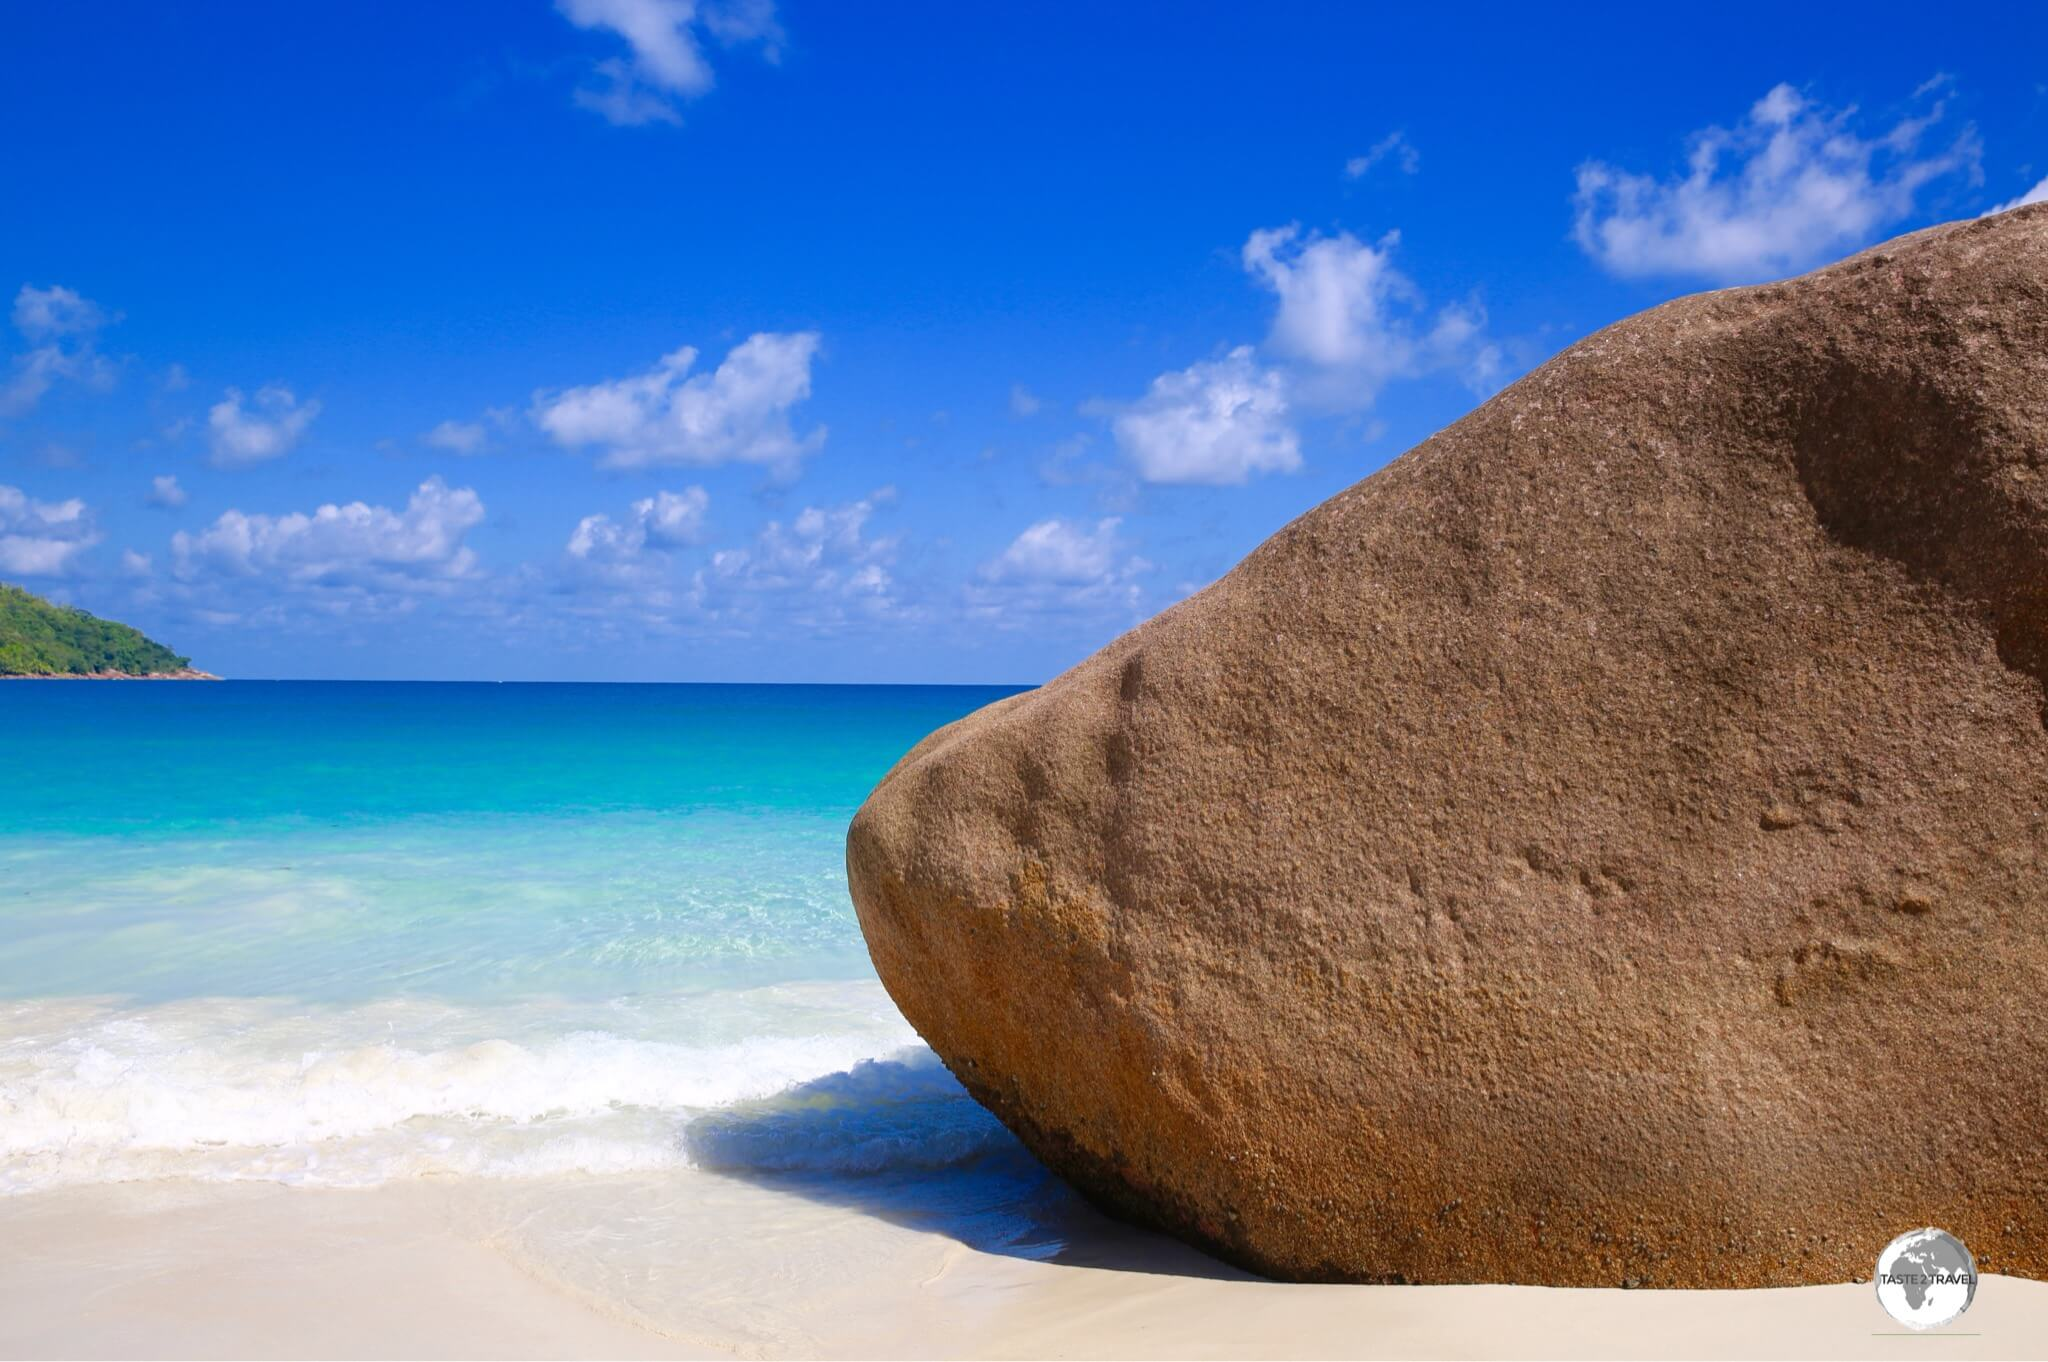 The many terracotta-coloured, granite boulders provide a stark contrast against the turquoise waters and blue skies of the Seychelles.